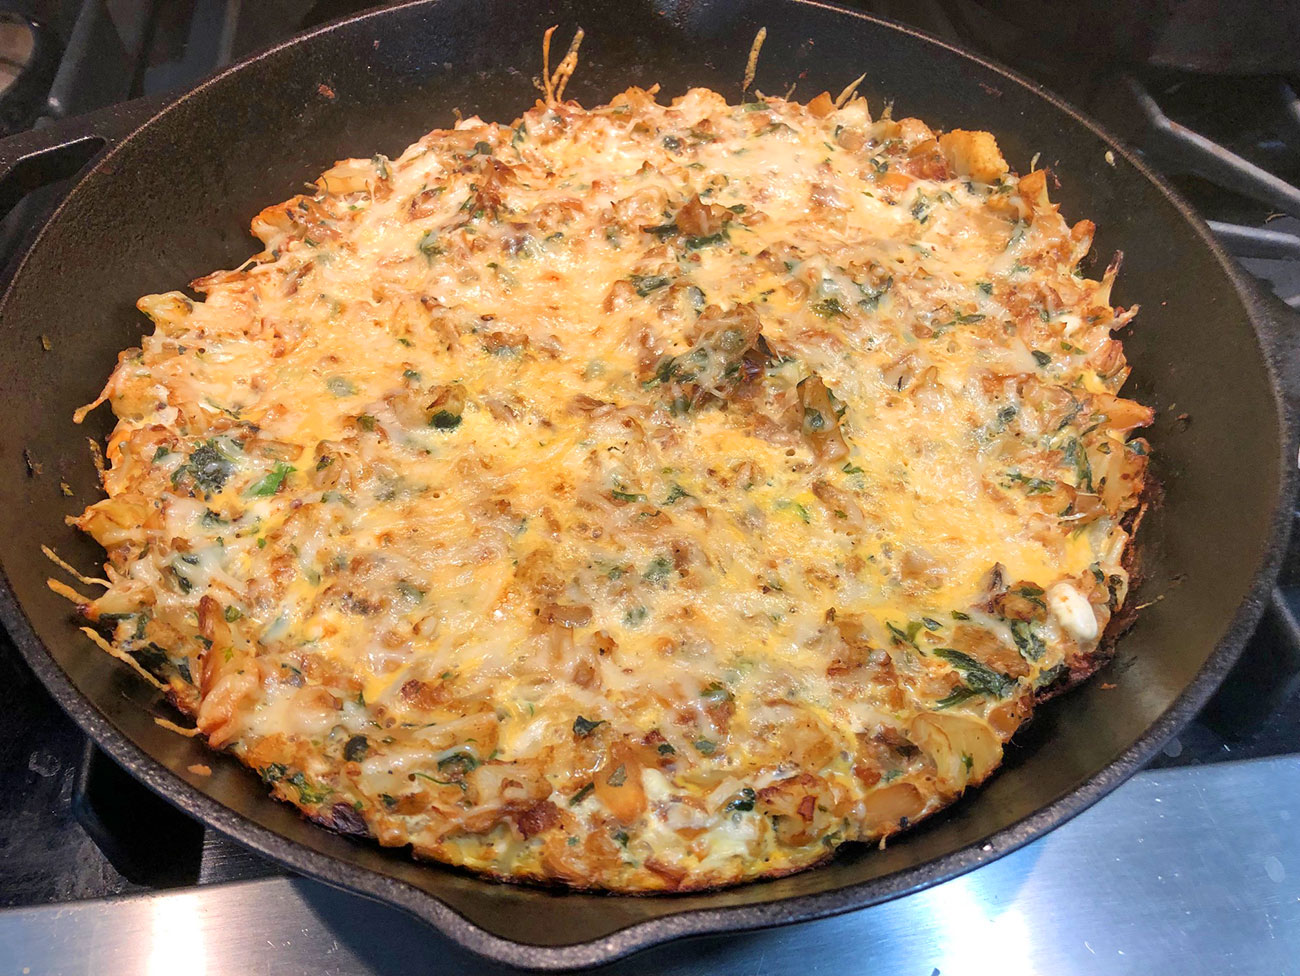 Persian cauliflower and herb frittata in a cast-iron skillet